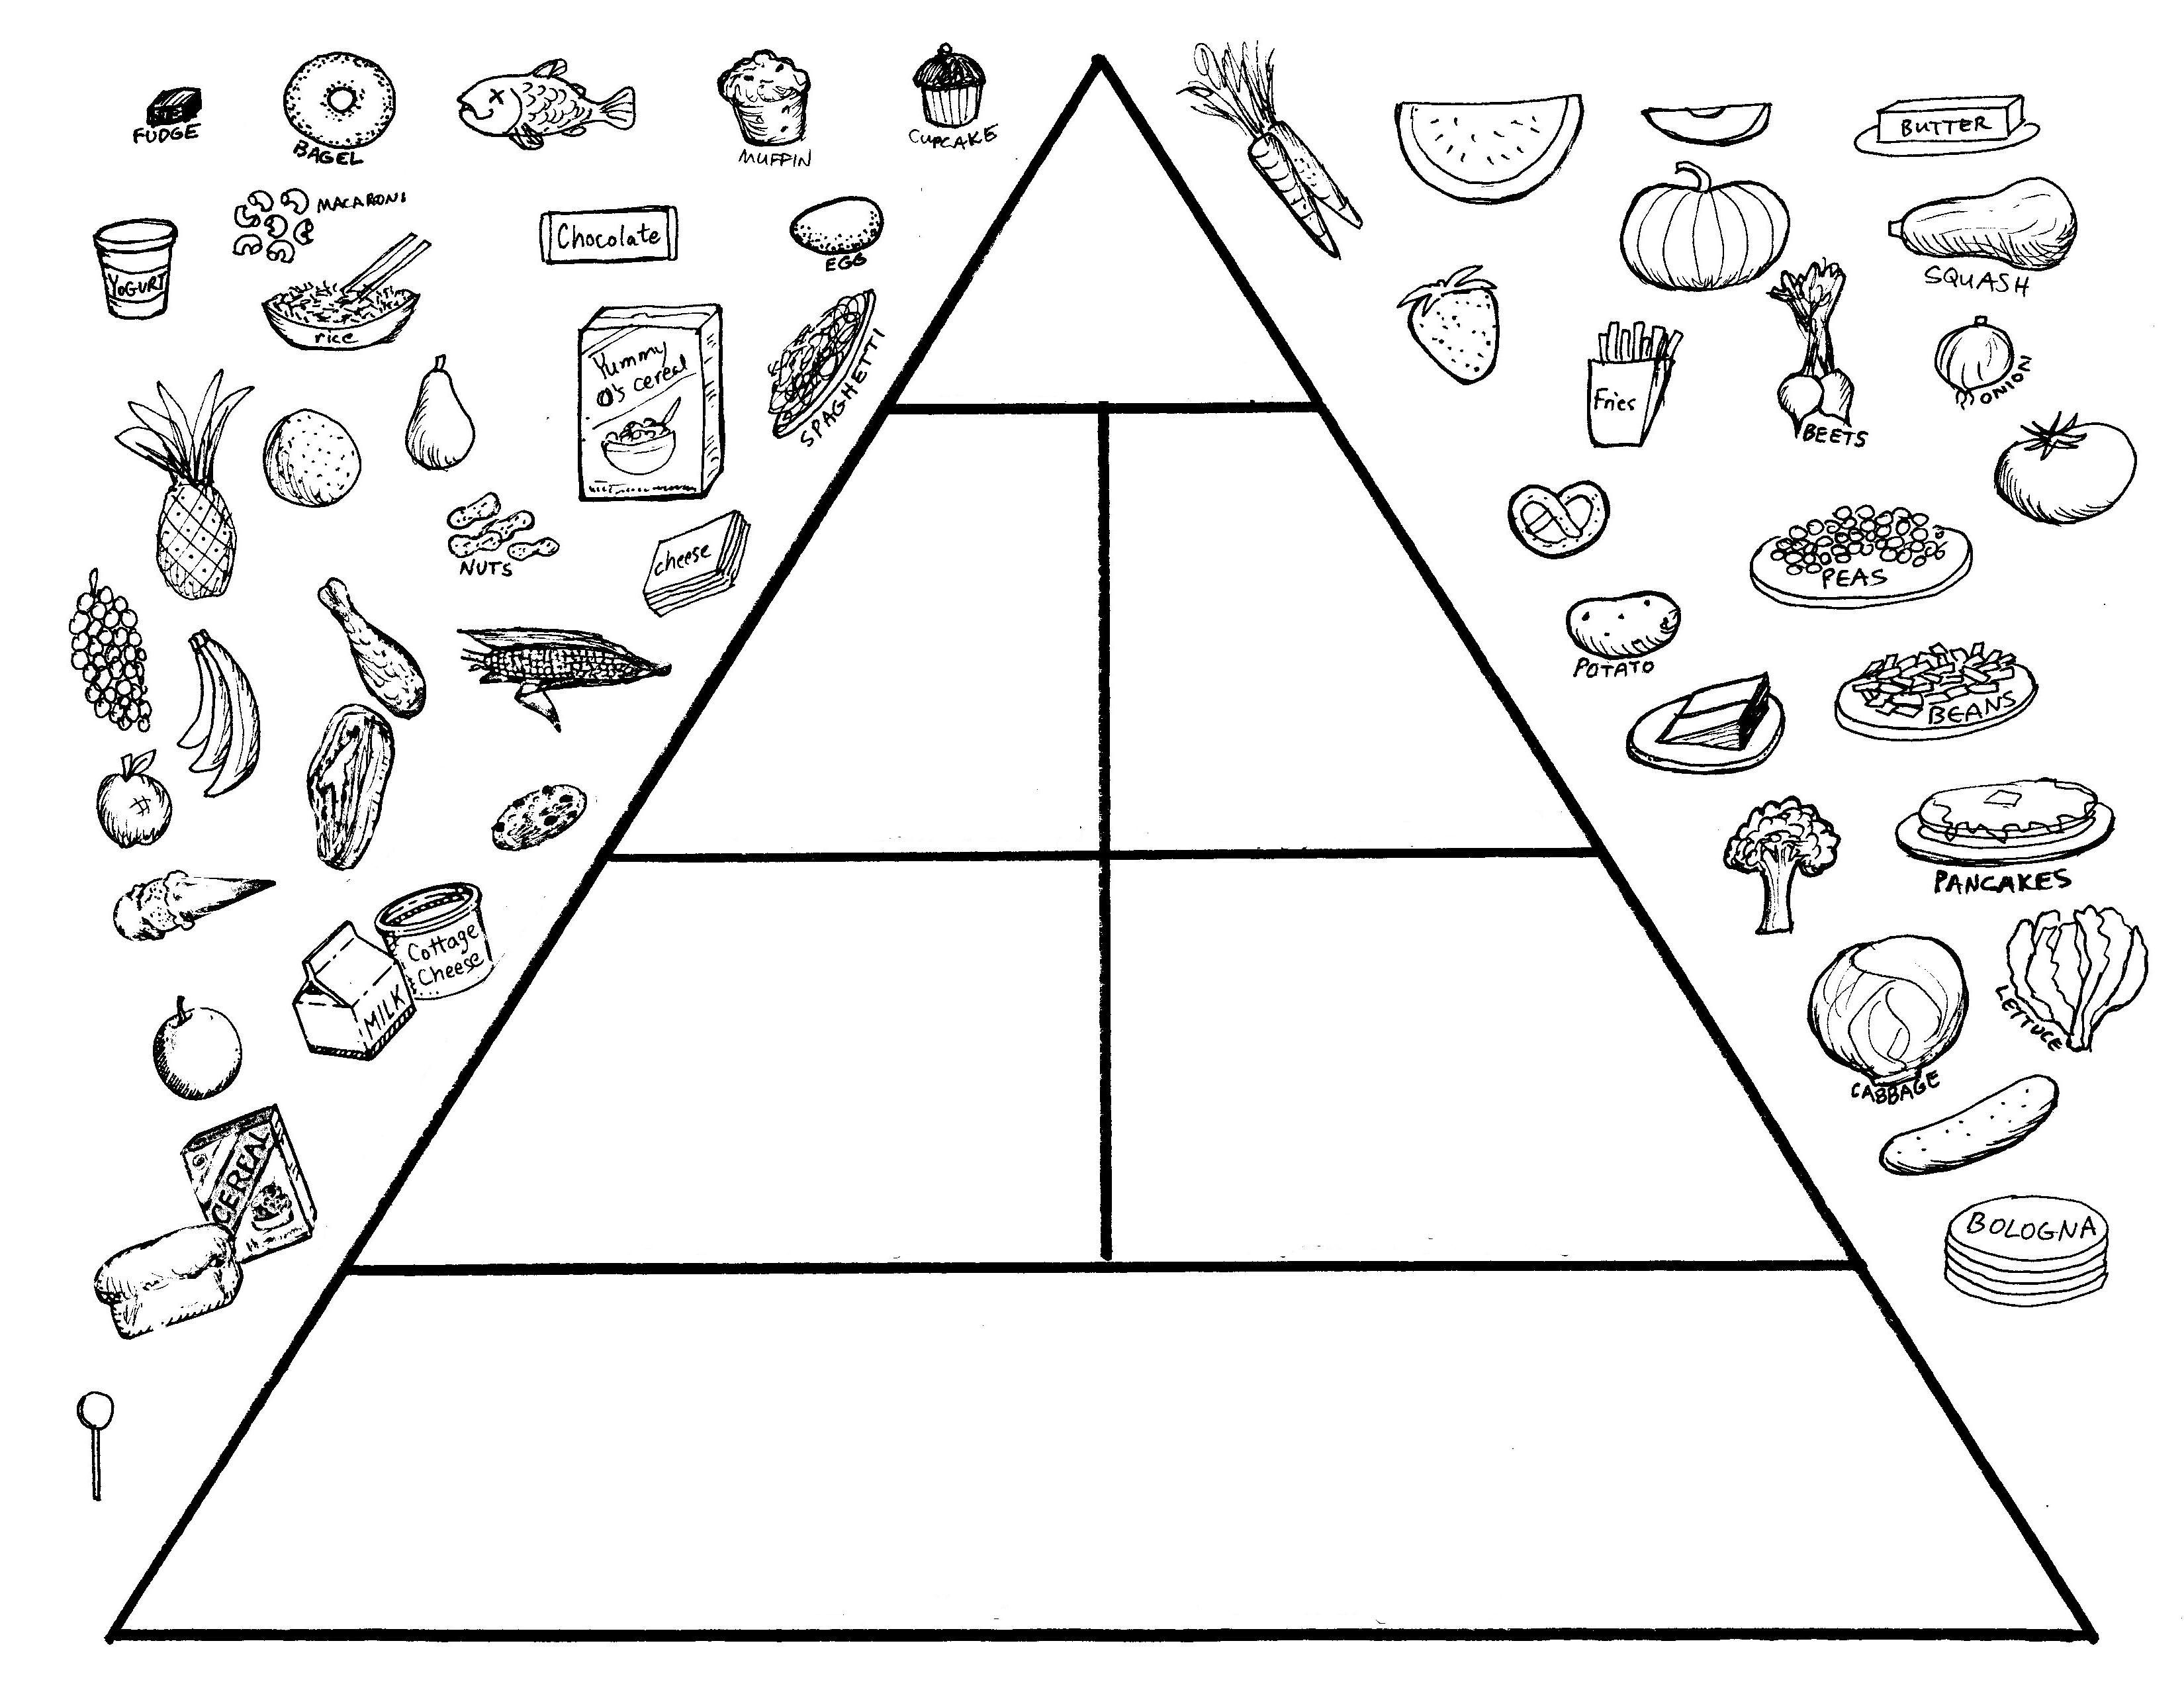 food pyramid coloring pages Collection-Printable Food Pyramid Activities 14-j